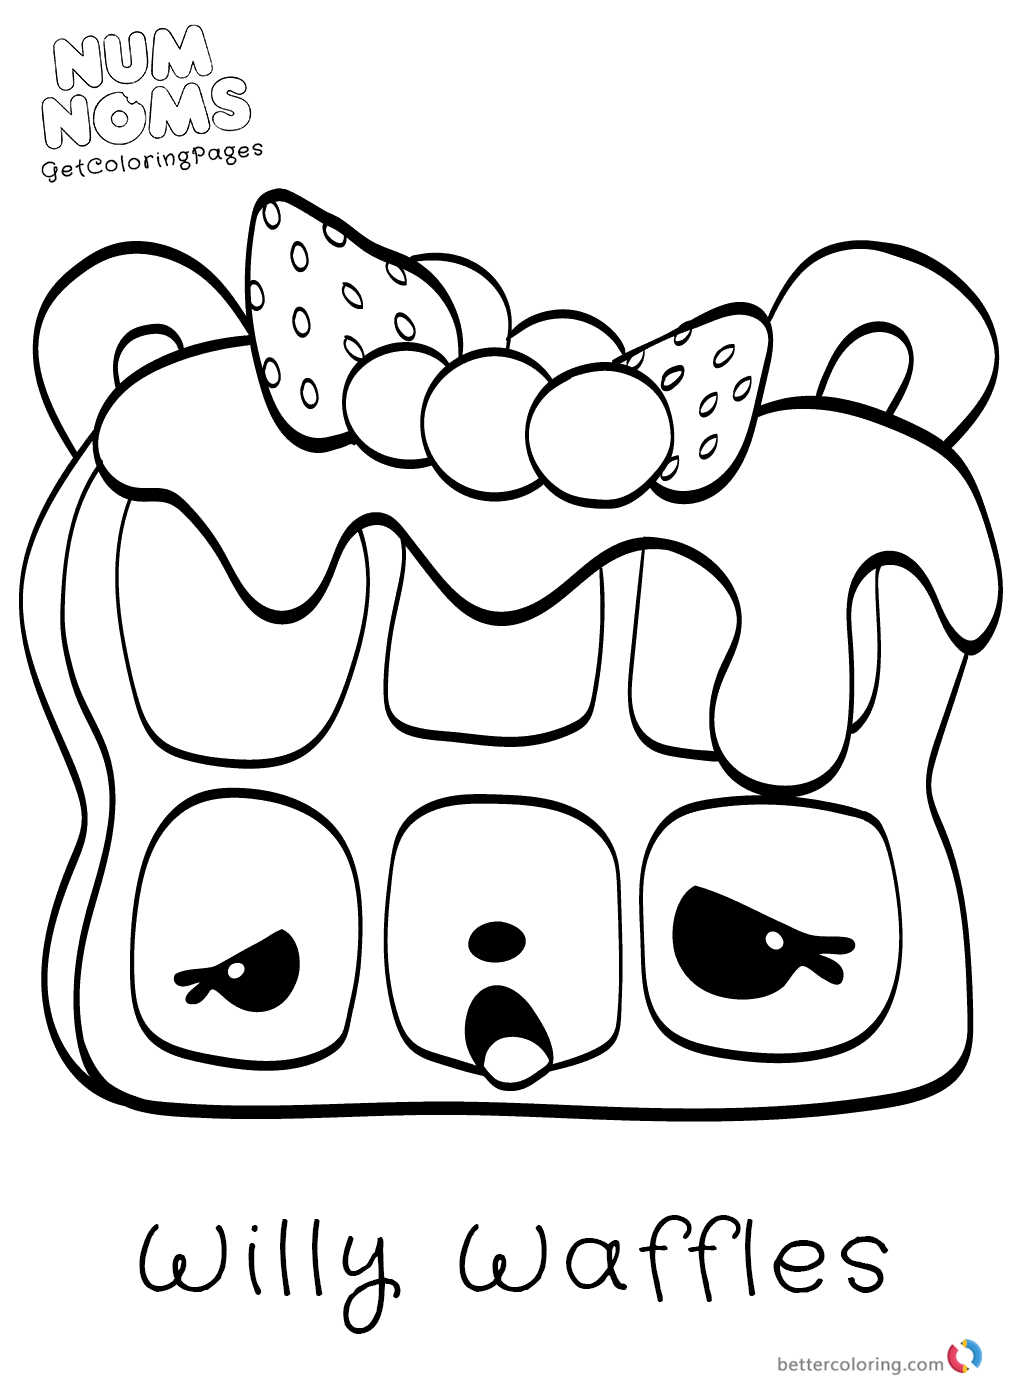 Cute Num Noms Coloring Pages